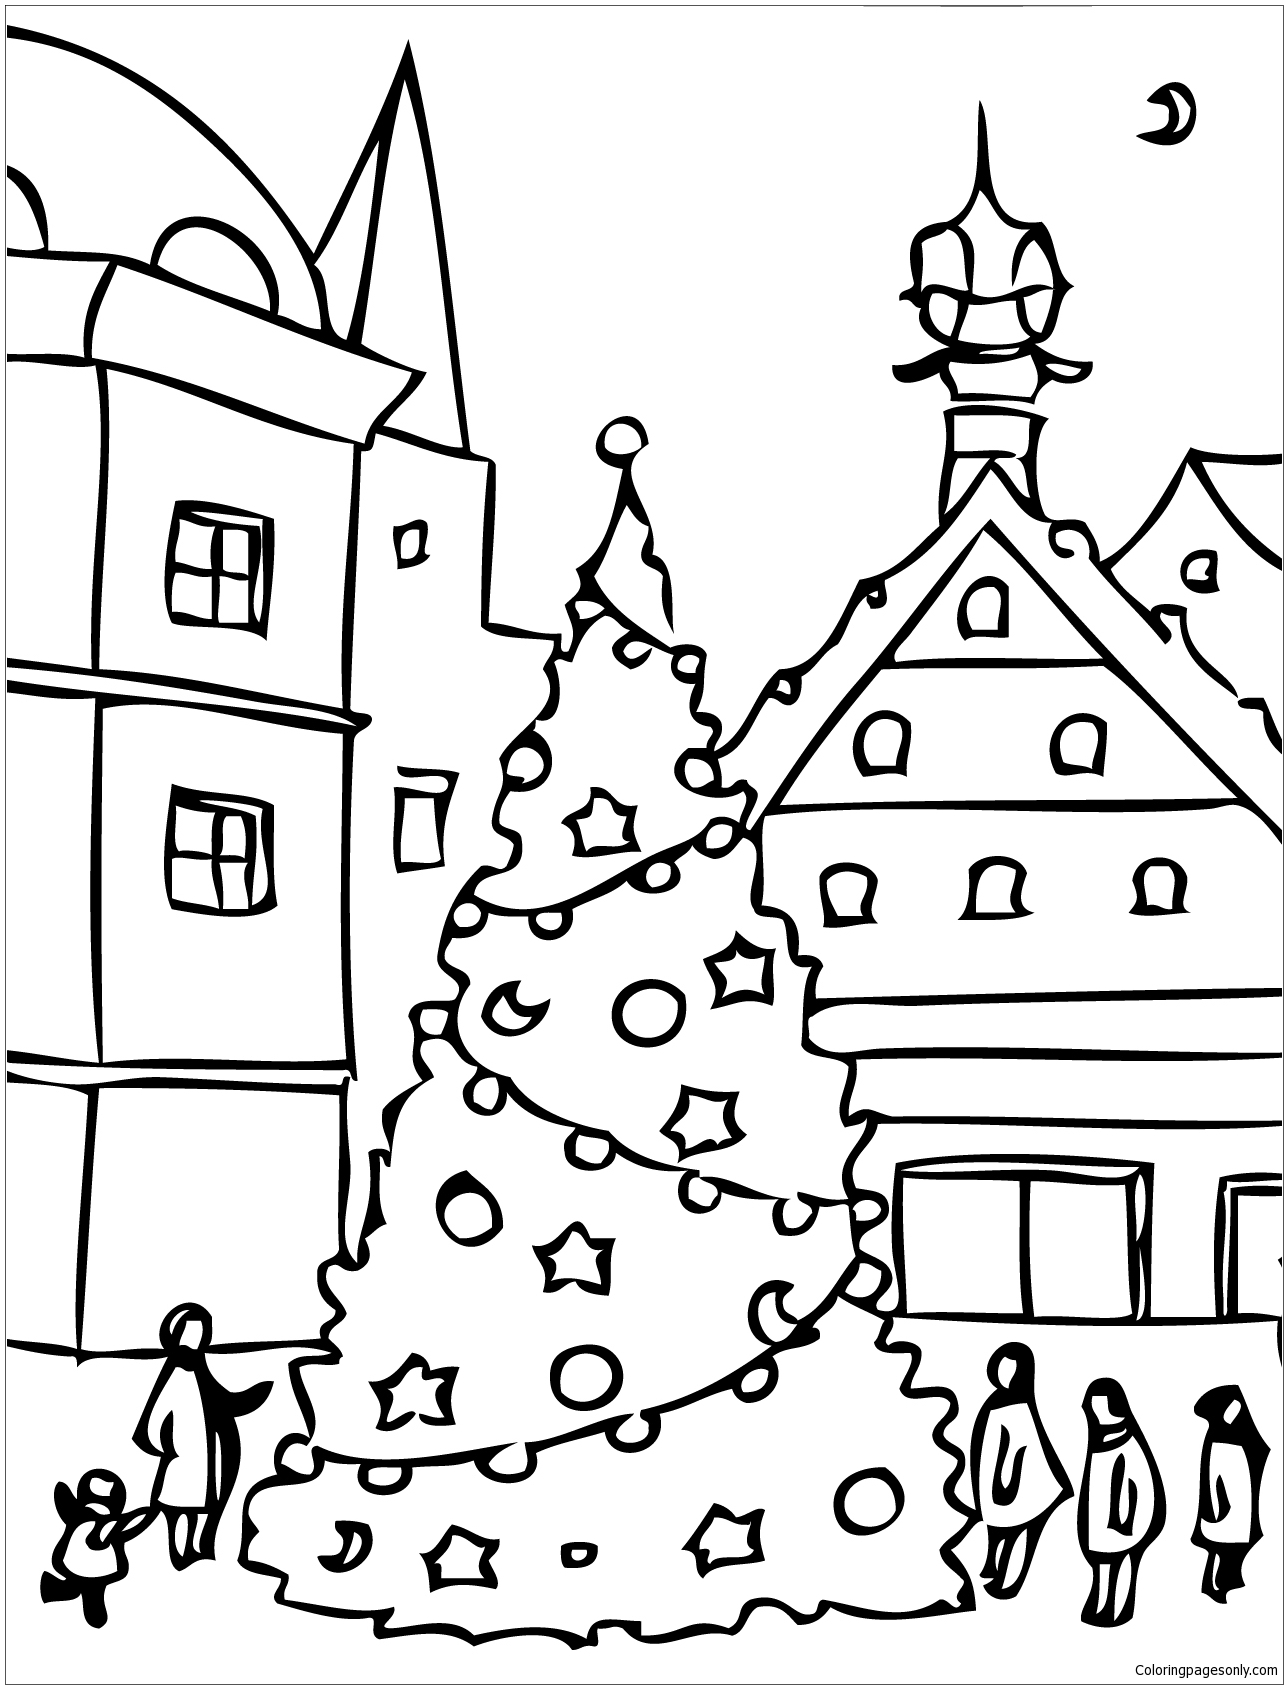 Christmas Eve Coloring Pages At Getcolorings